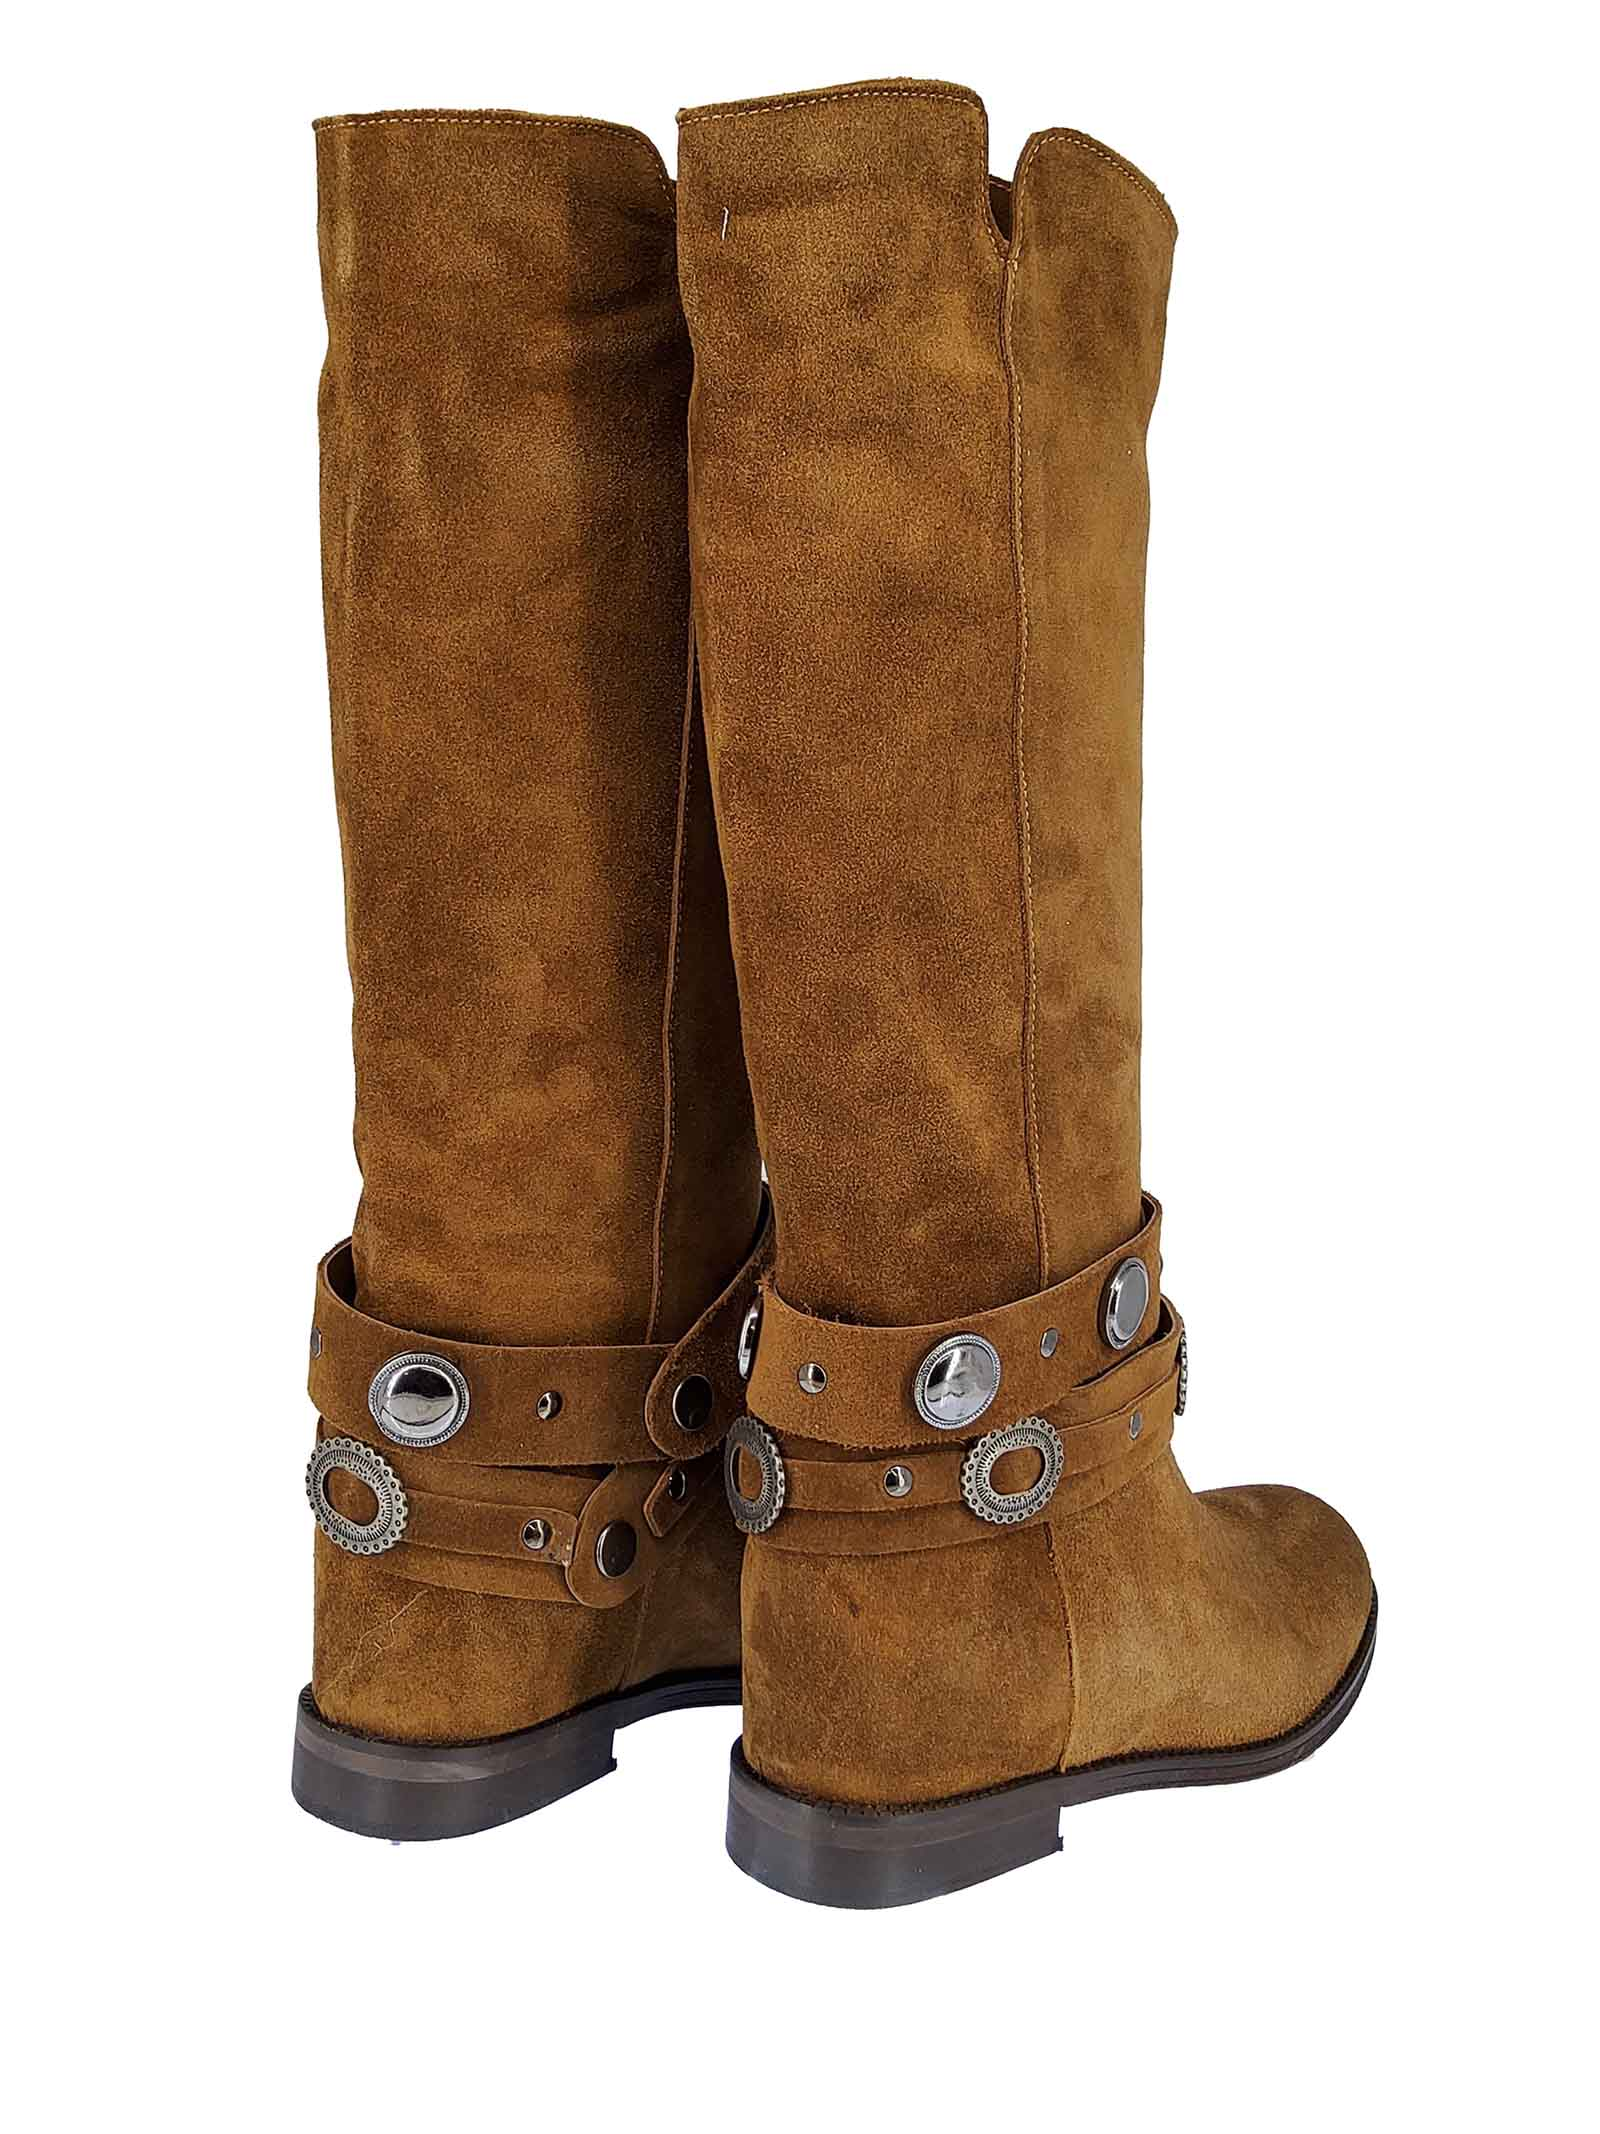 Women's Shoes Boots in Tan Suede with Strap and Studs Inside Wedge Spatarella | Boots | TS8010014